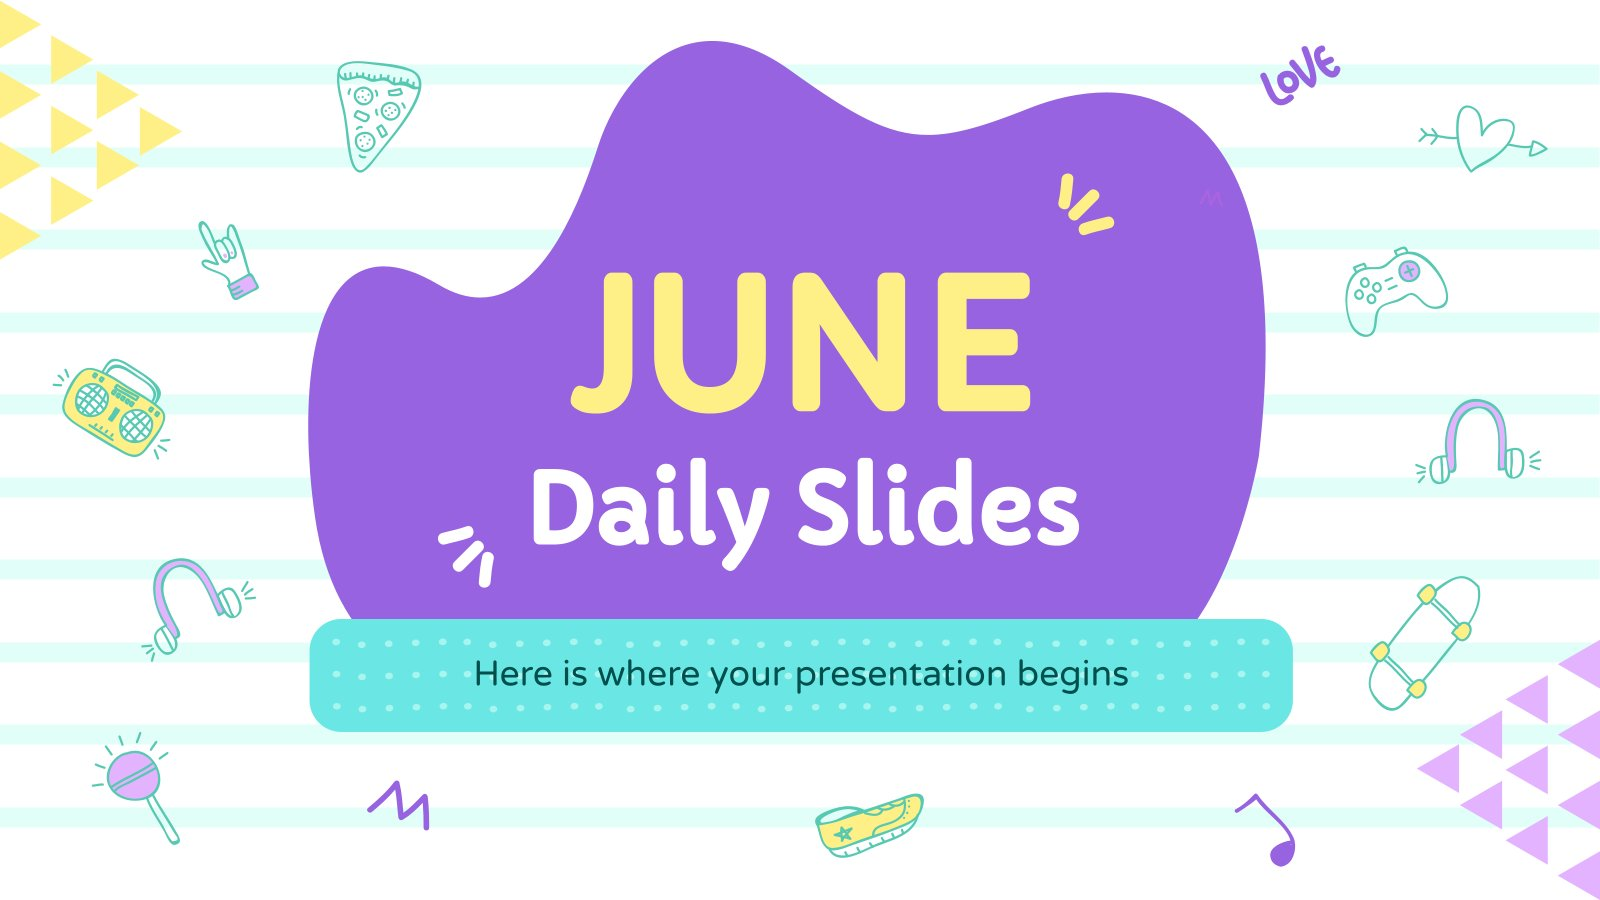 June Daily Slides presentation template